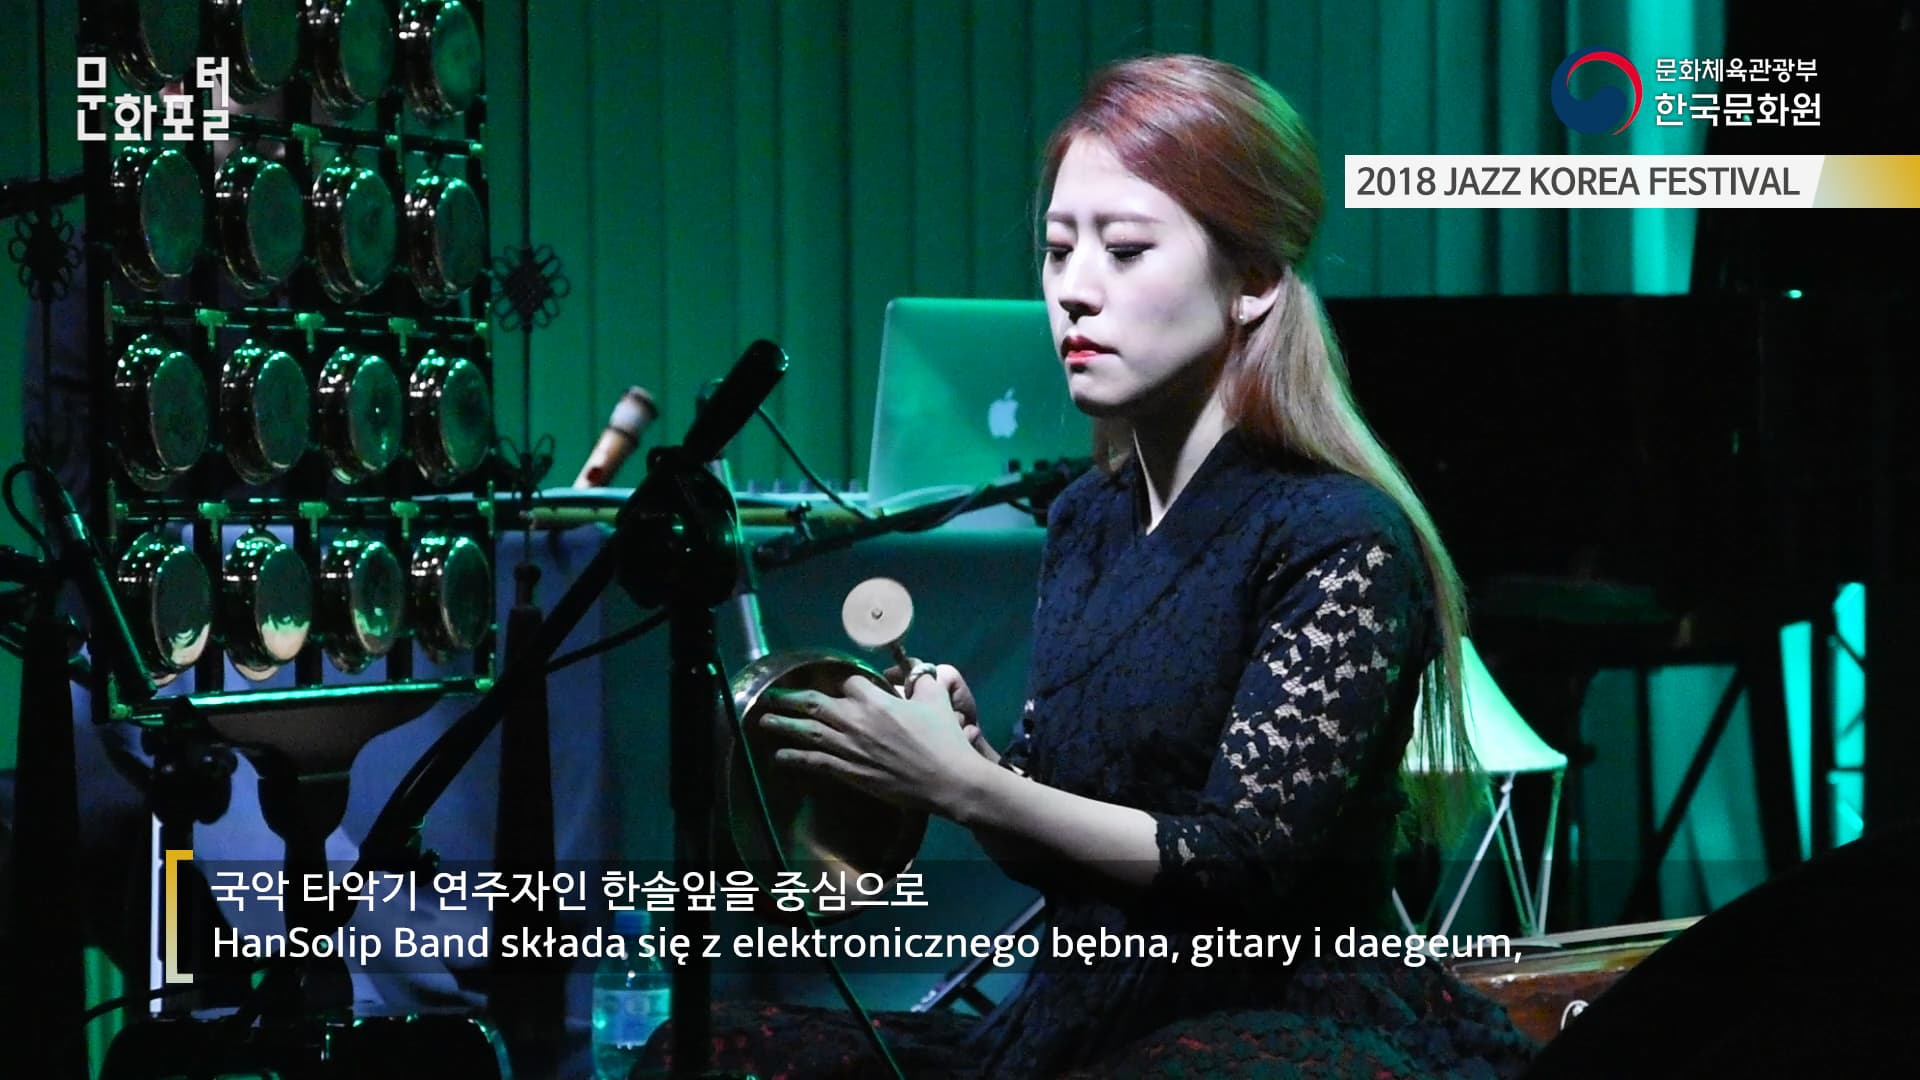 [폴란드/해외문화PD] 2018 JAZZ KOREA FESTIVAL 2018 in Poland